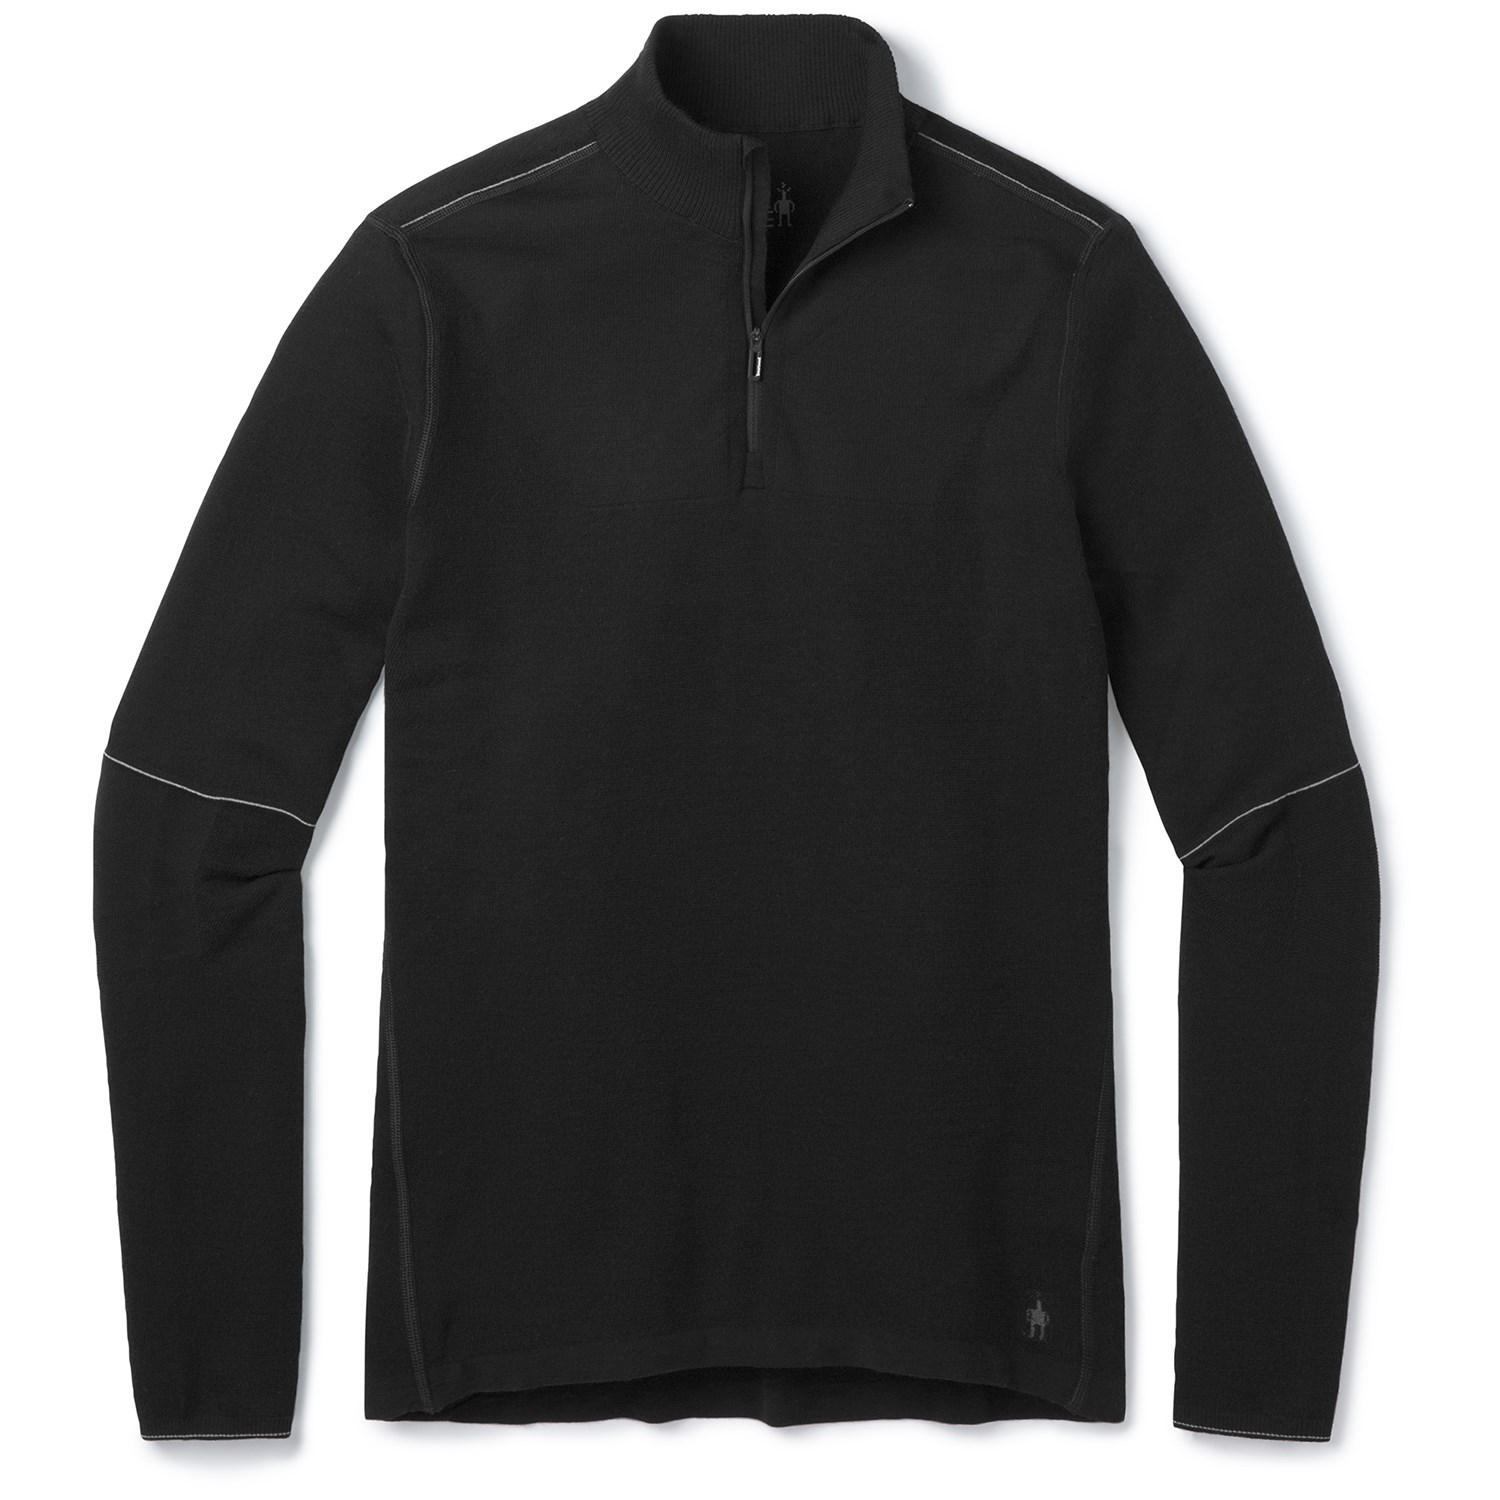 photo: Smartwool Men's Intraknit Merino 250 Thermal 1/4 Zip base layer top